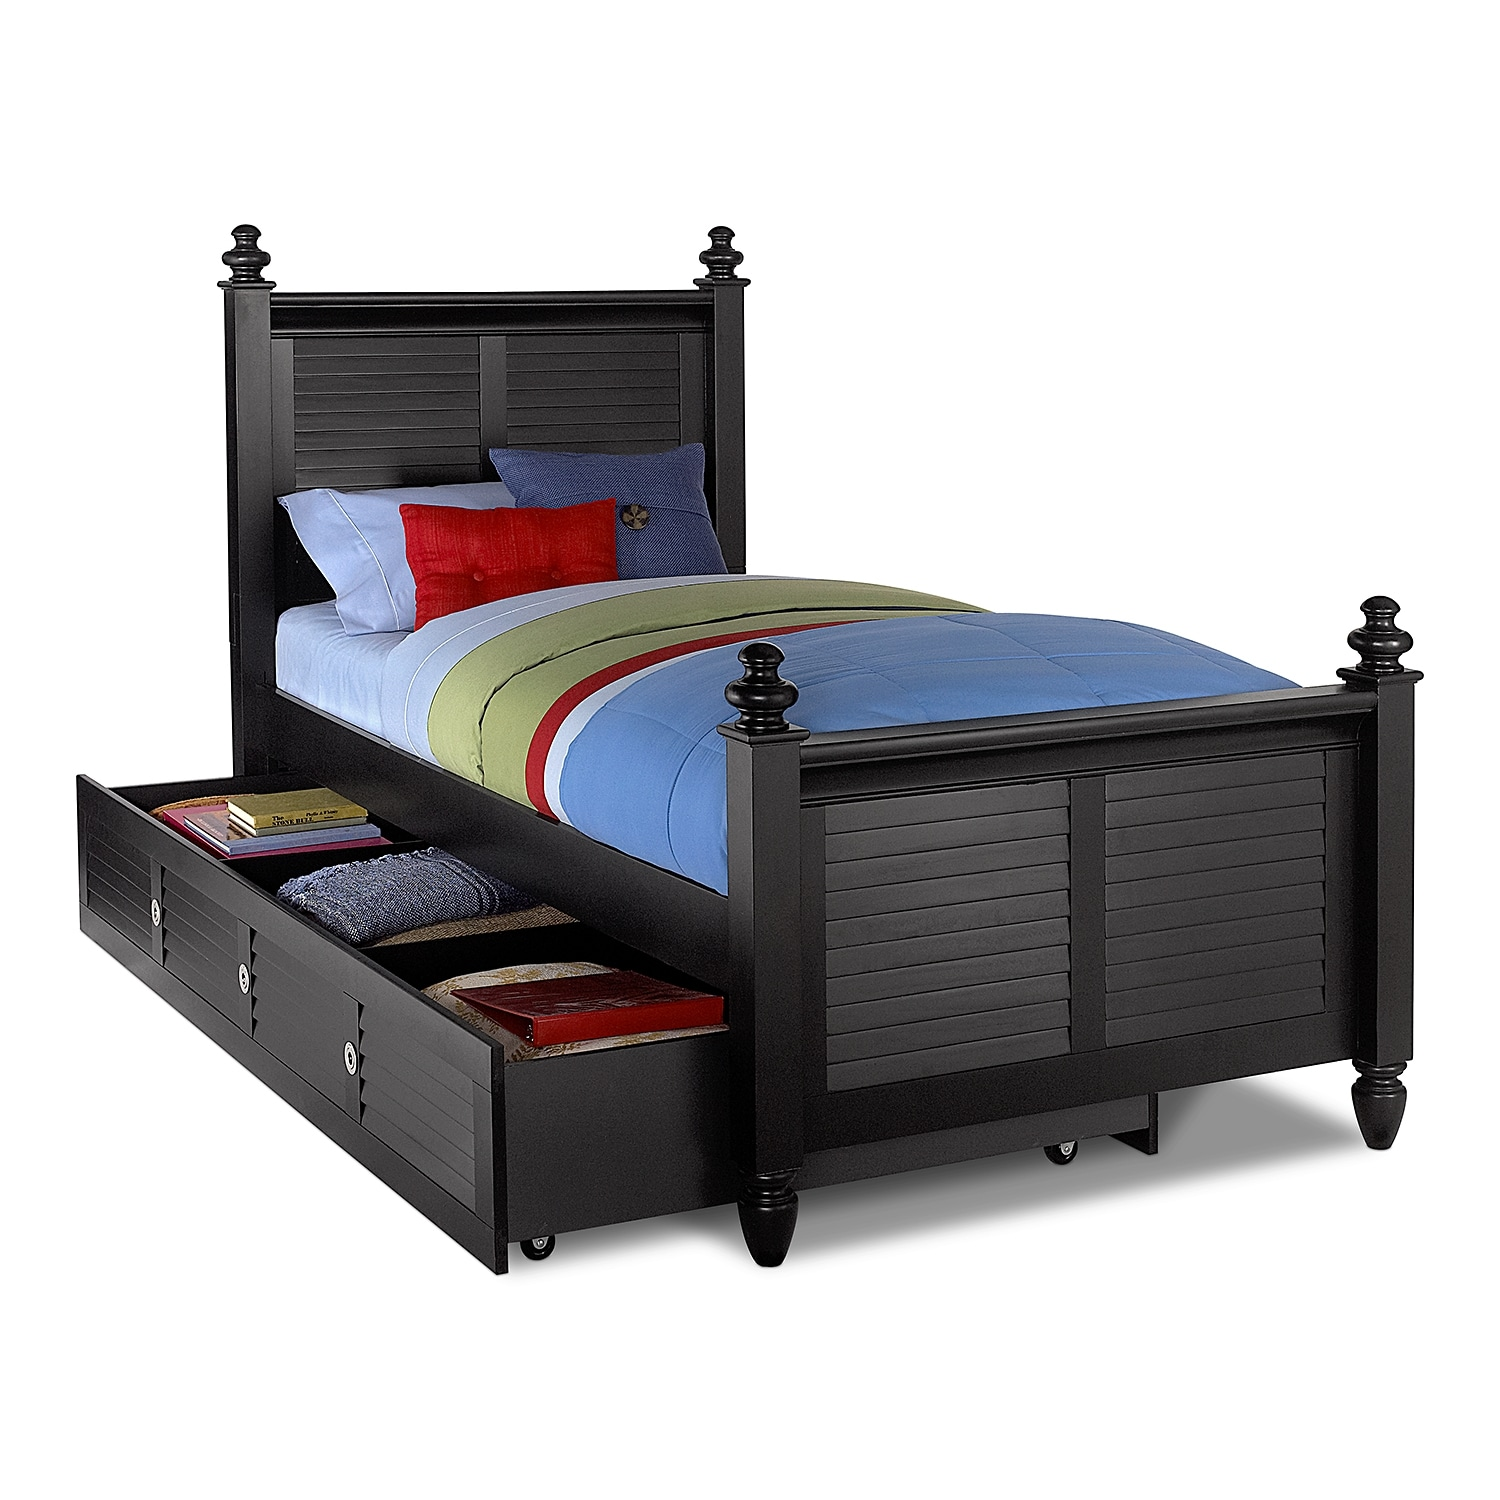 Boy Bedroom Set Seaside Twin Bed With Trundle Black Value City Furniture